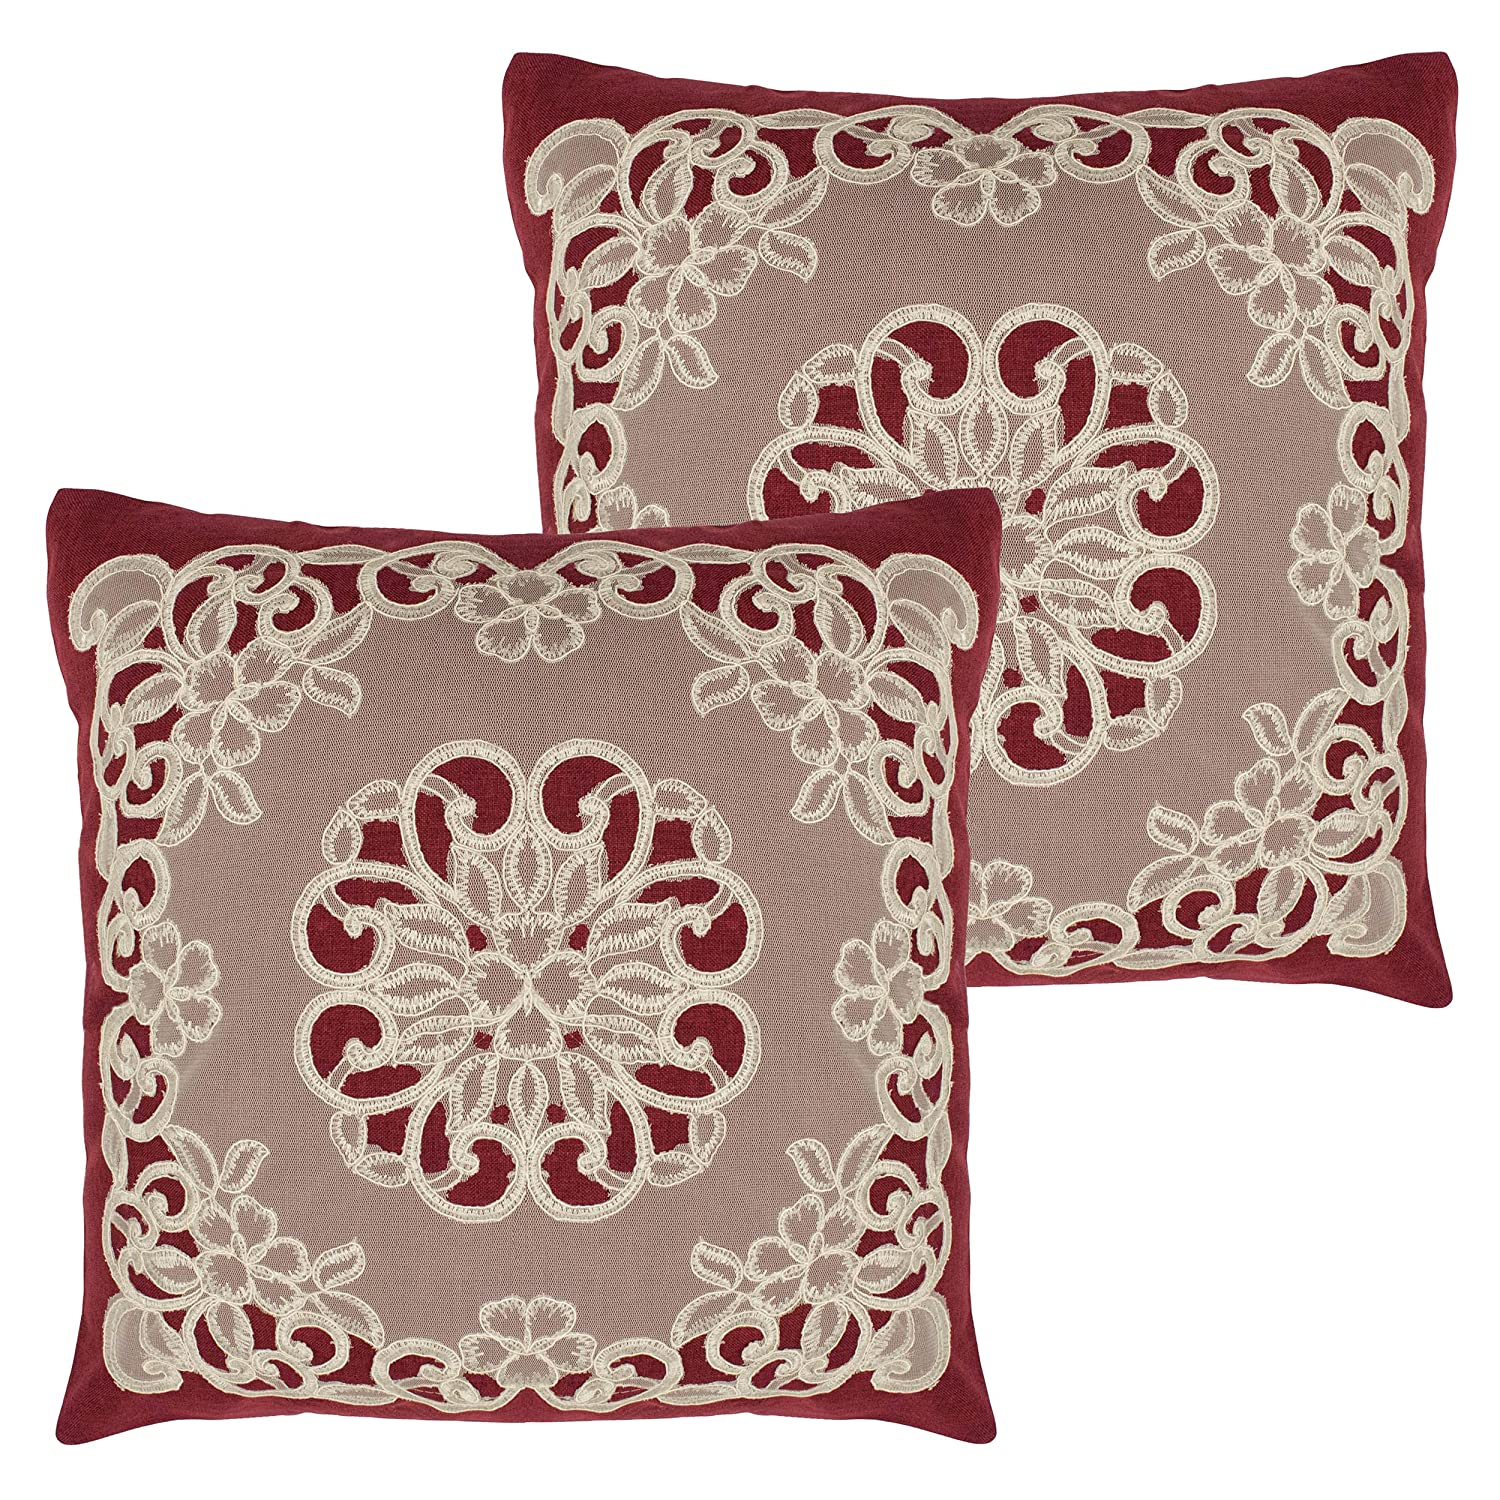 Amazoncom Creative Home Ideas Emily 18 X 18 In Set Of 2 Lace